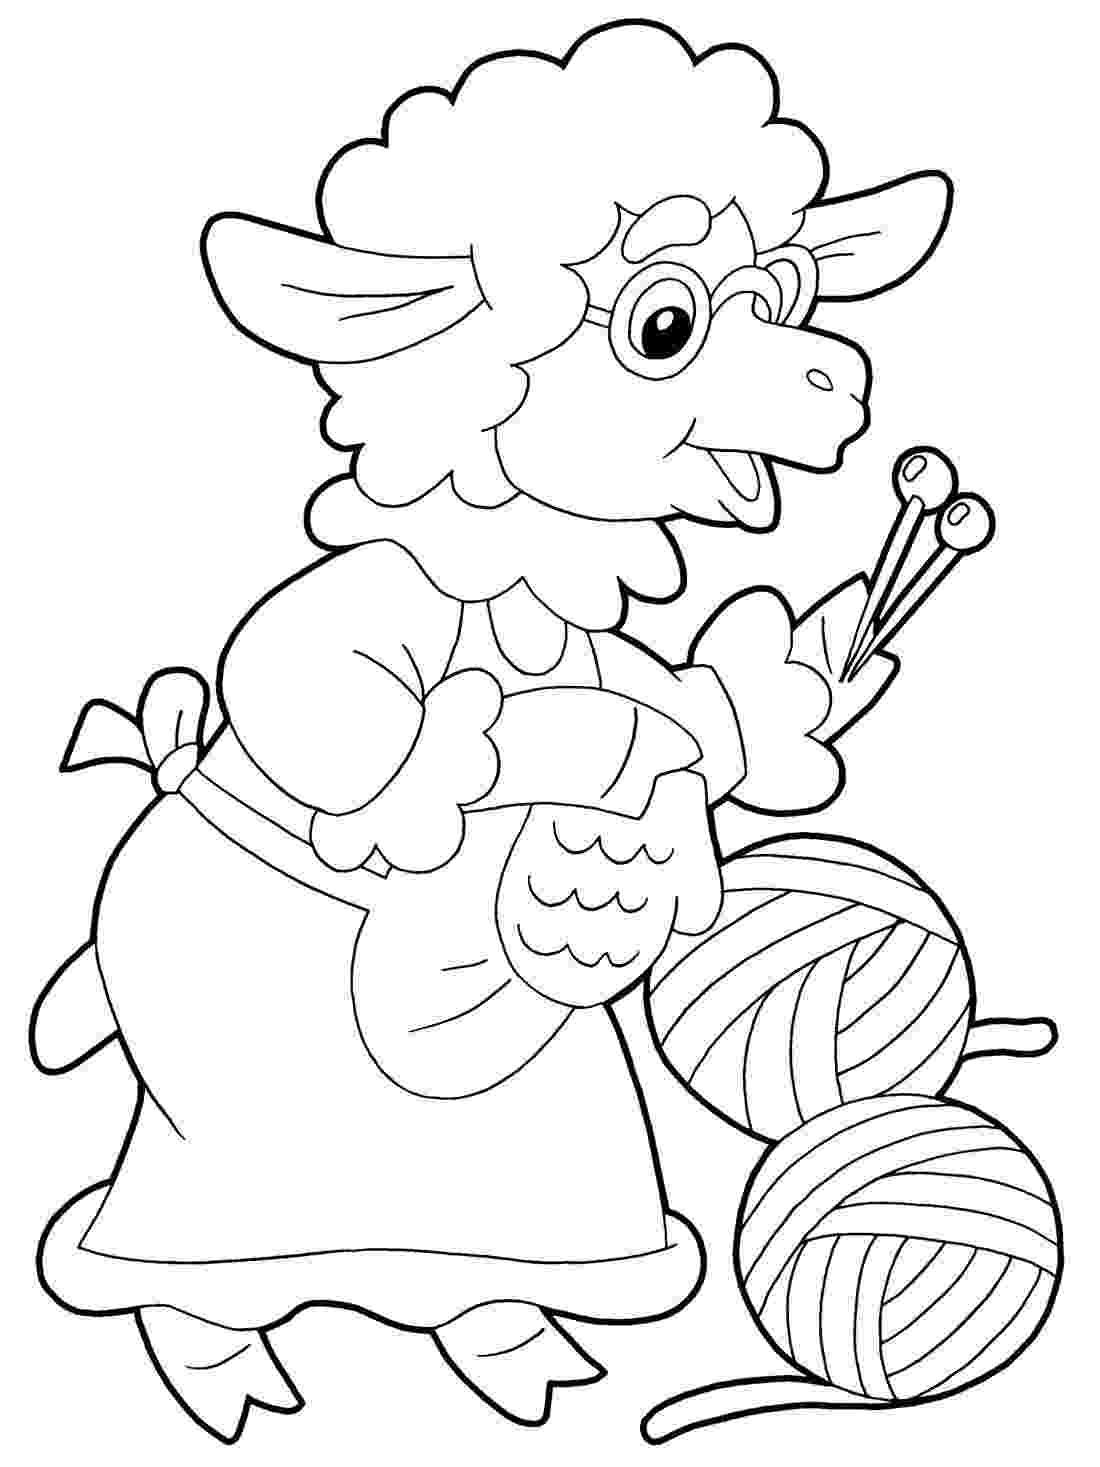 coloring pges snail coloring pages to download and print for free pges coloring